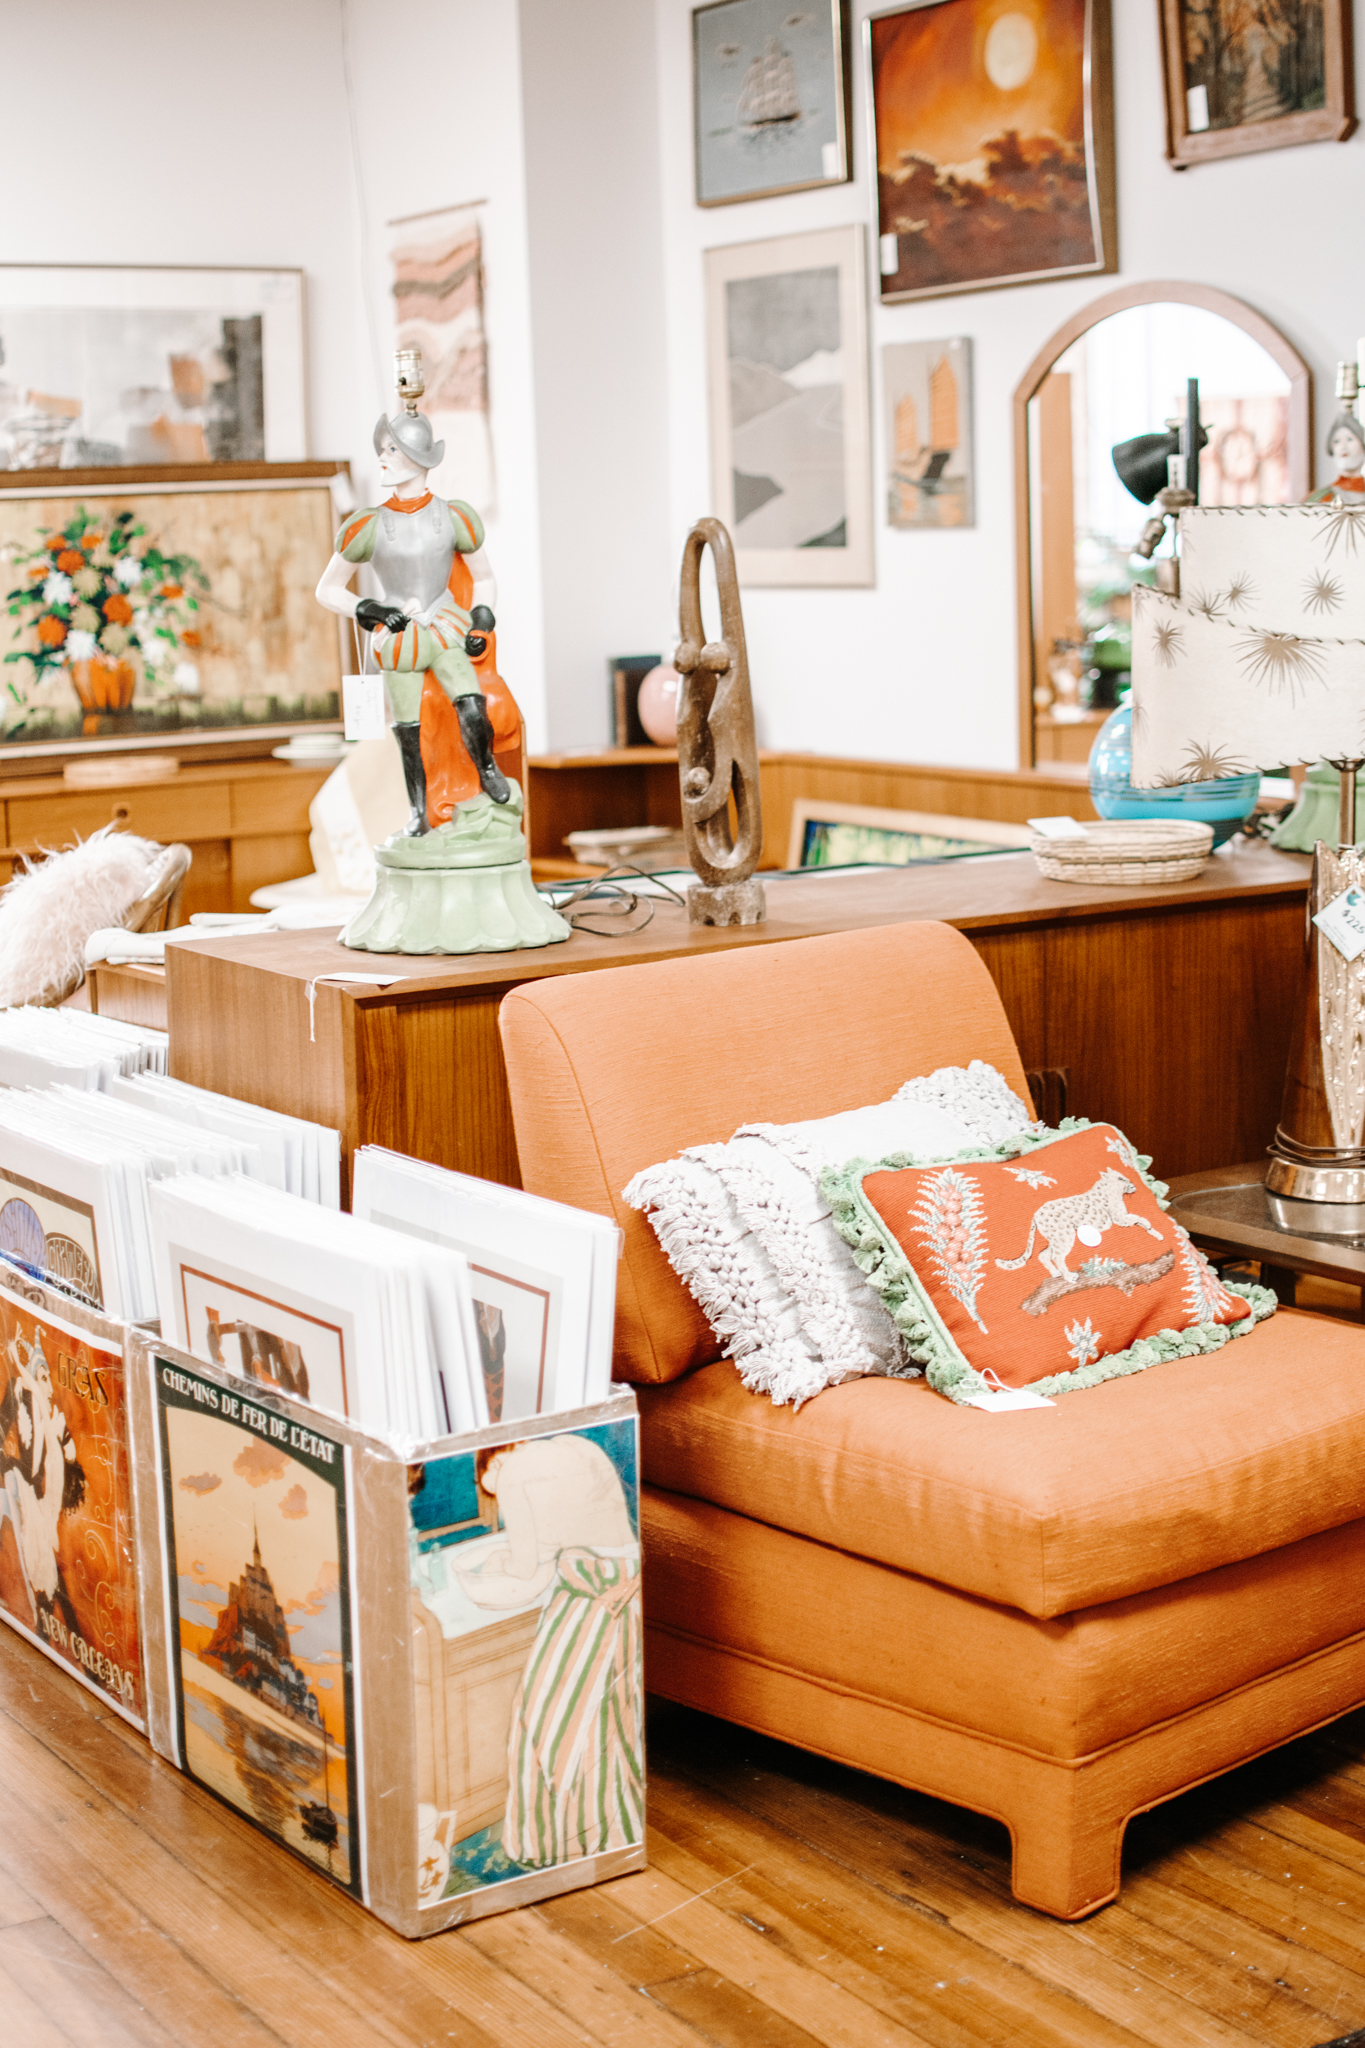 antiquing in frederick maryland - frederick maryland antiques - vintage mc frederick